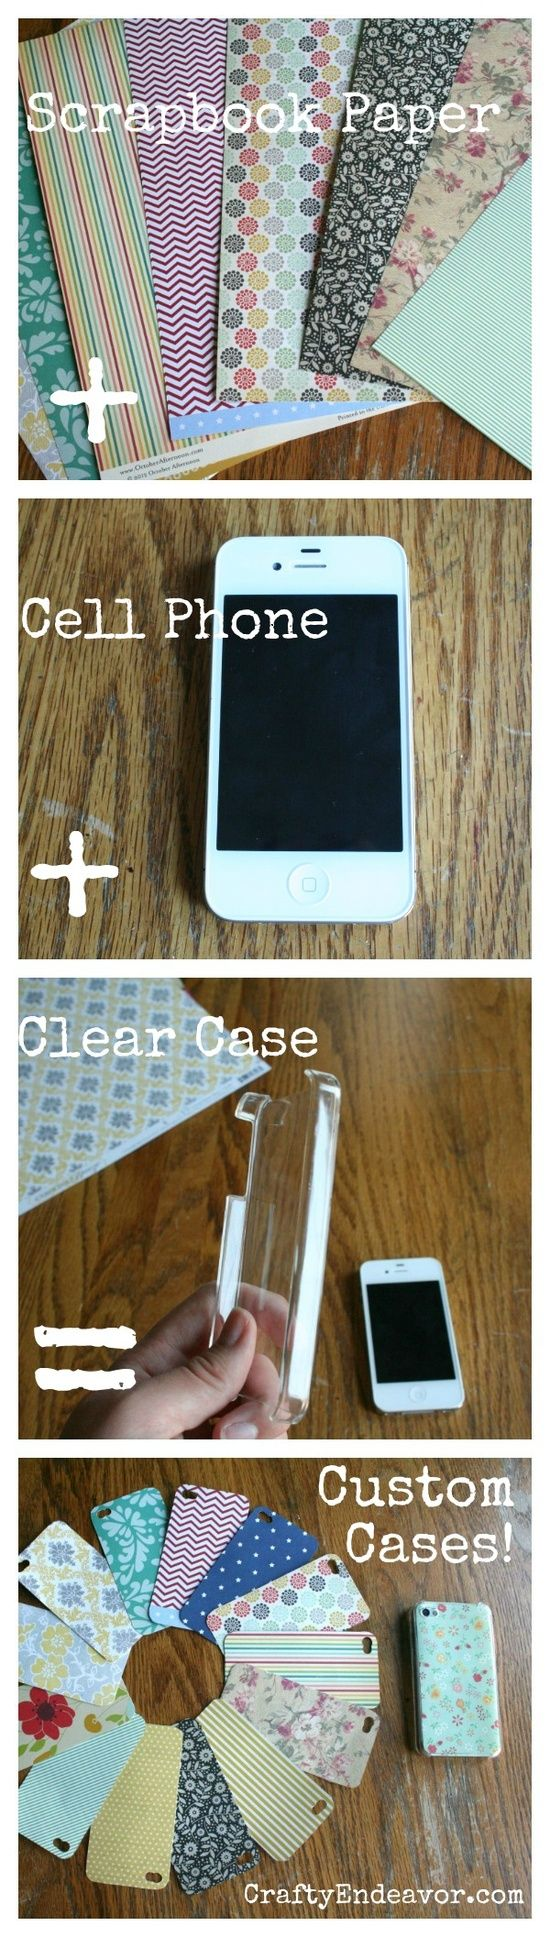 customize your cell phone with scrapbook paper.